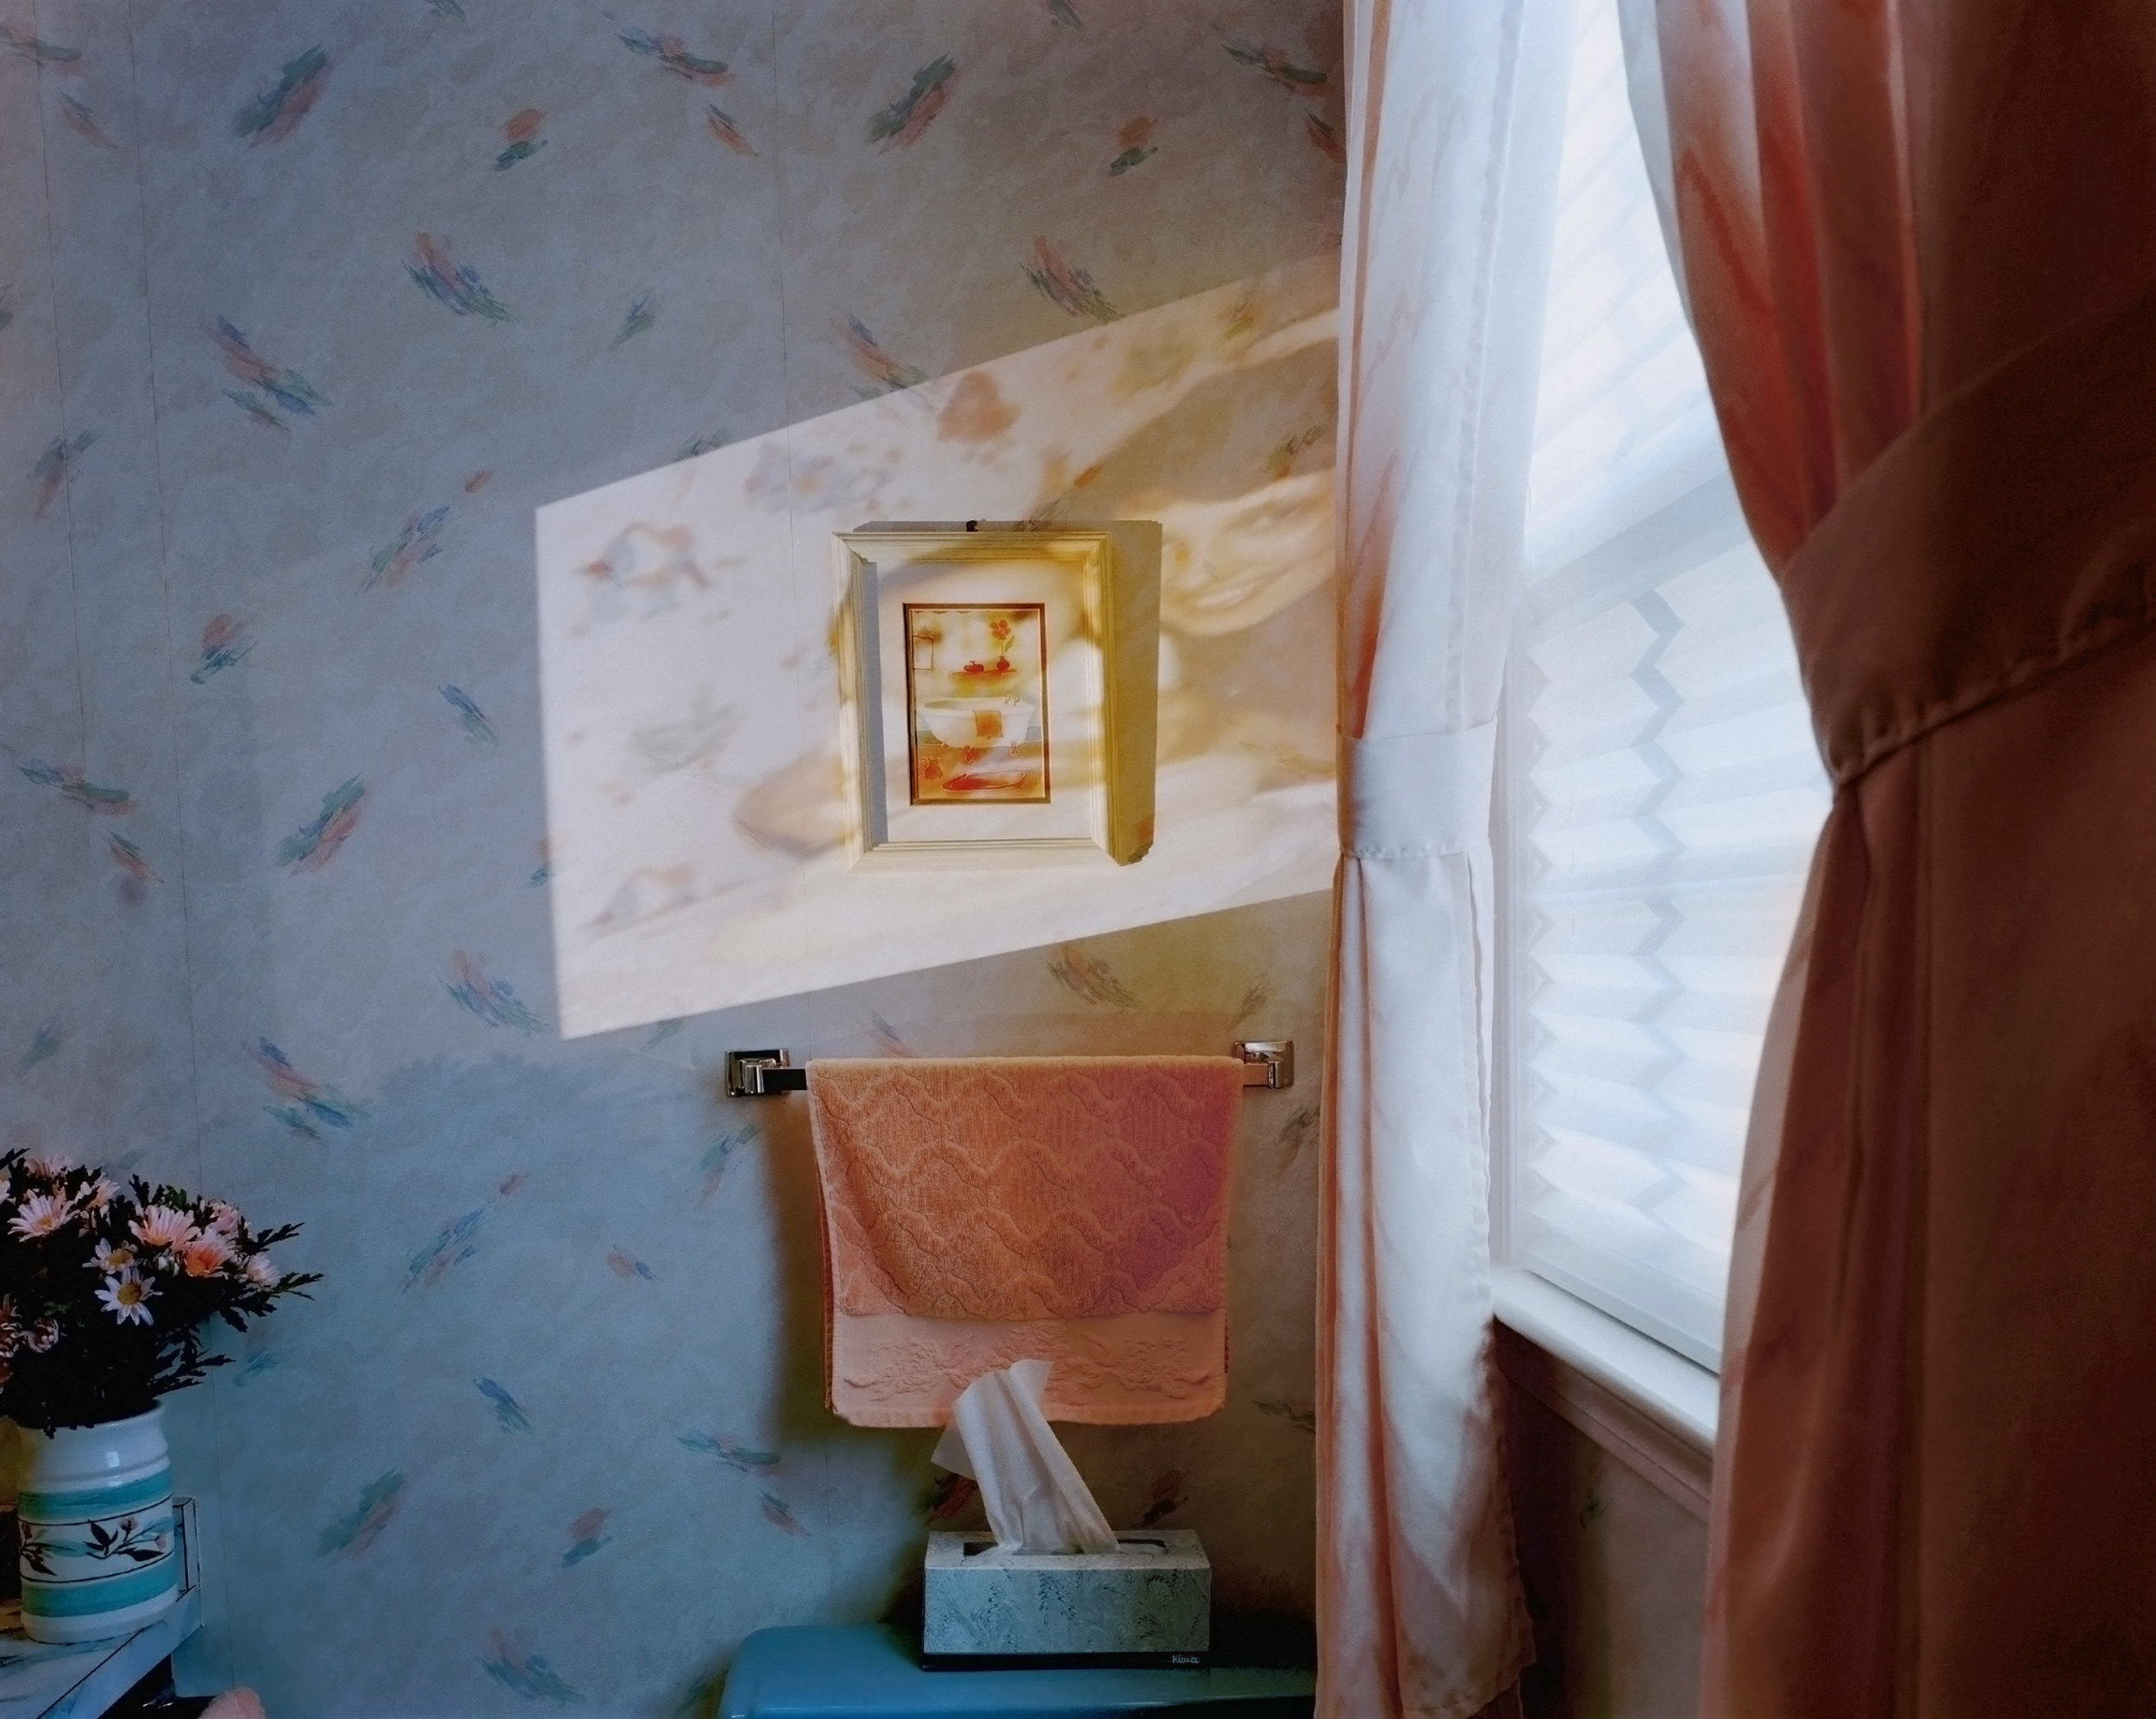 Bathroom, 2004